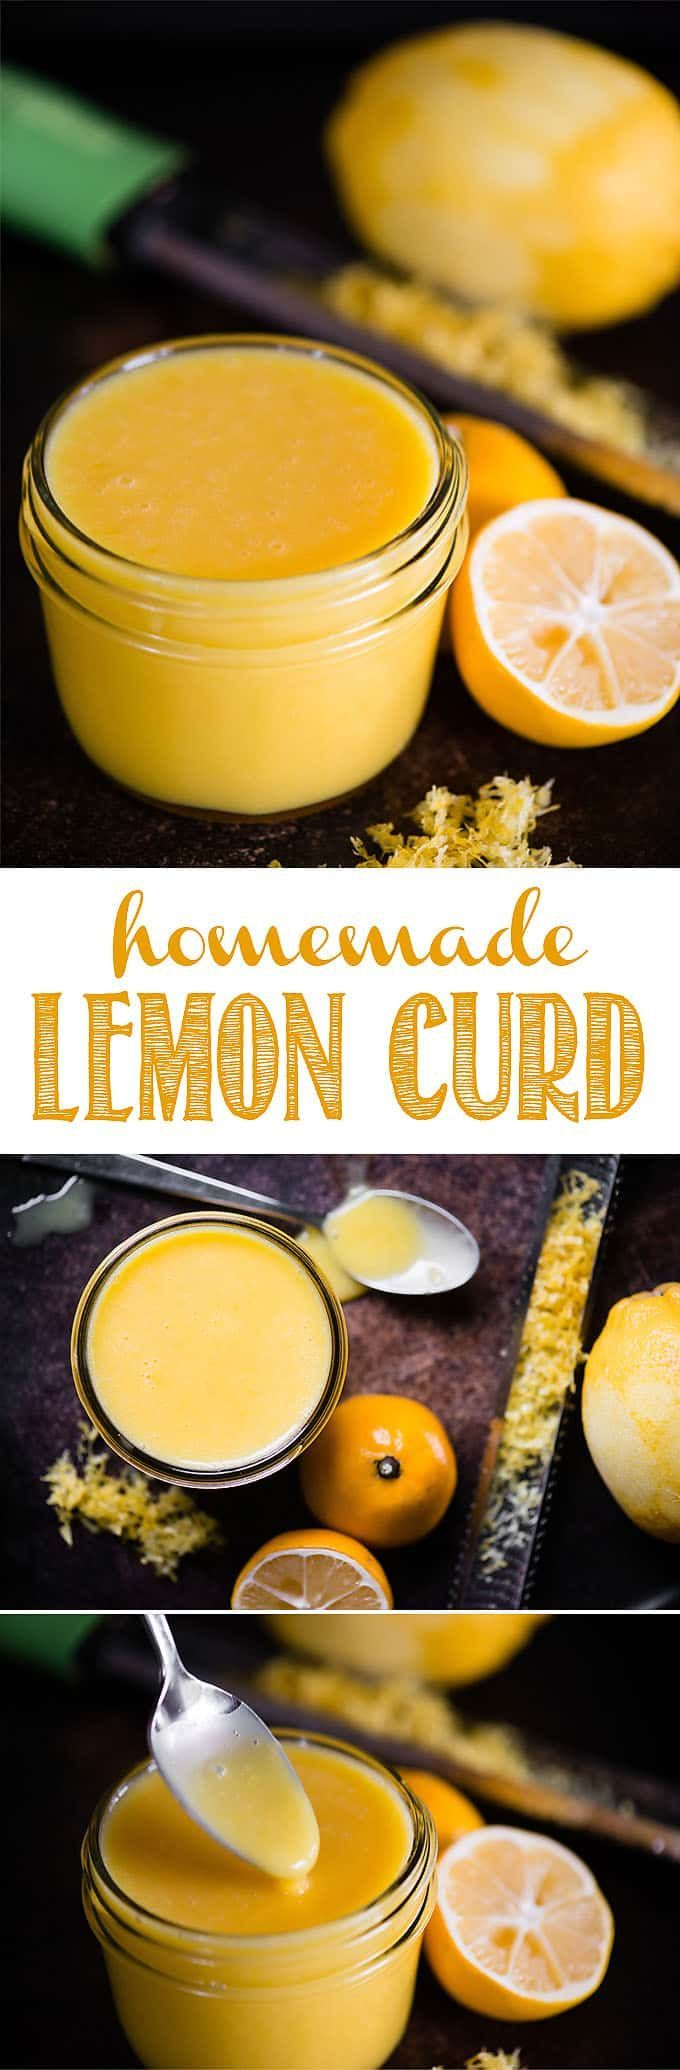 Lemon curd is easily made from scratch from fresh lemons, butter, sugar, and egg yolks. The intense citrus flavor in lemon curd is irresistible. This tart dessert spread can be used as a tangy ingredient in sweets, baked good, or breakfast. Once you make your own, you'll never go back to store bought! #lemon #lemons #lemoncurd